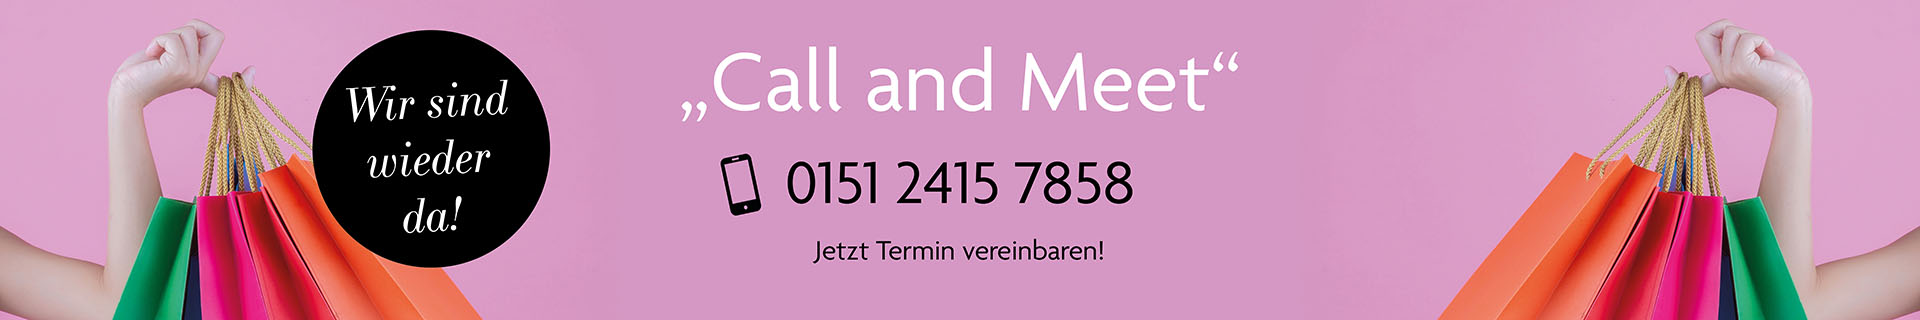 Standbild_Internetseite_call and meet